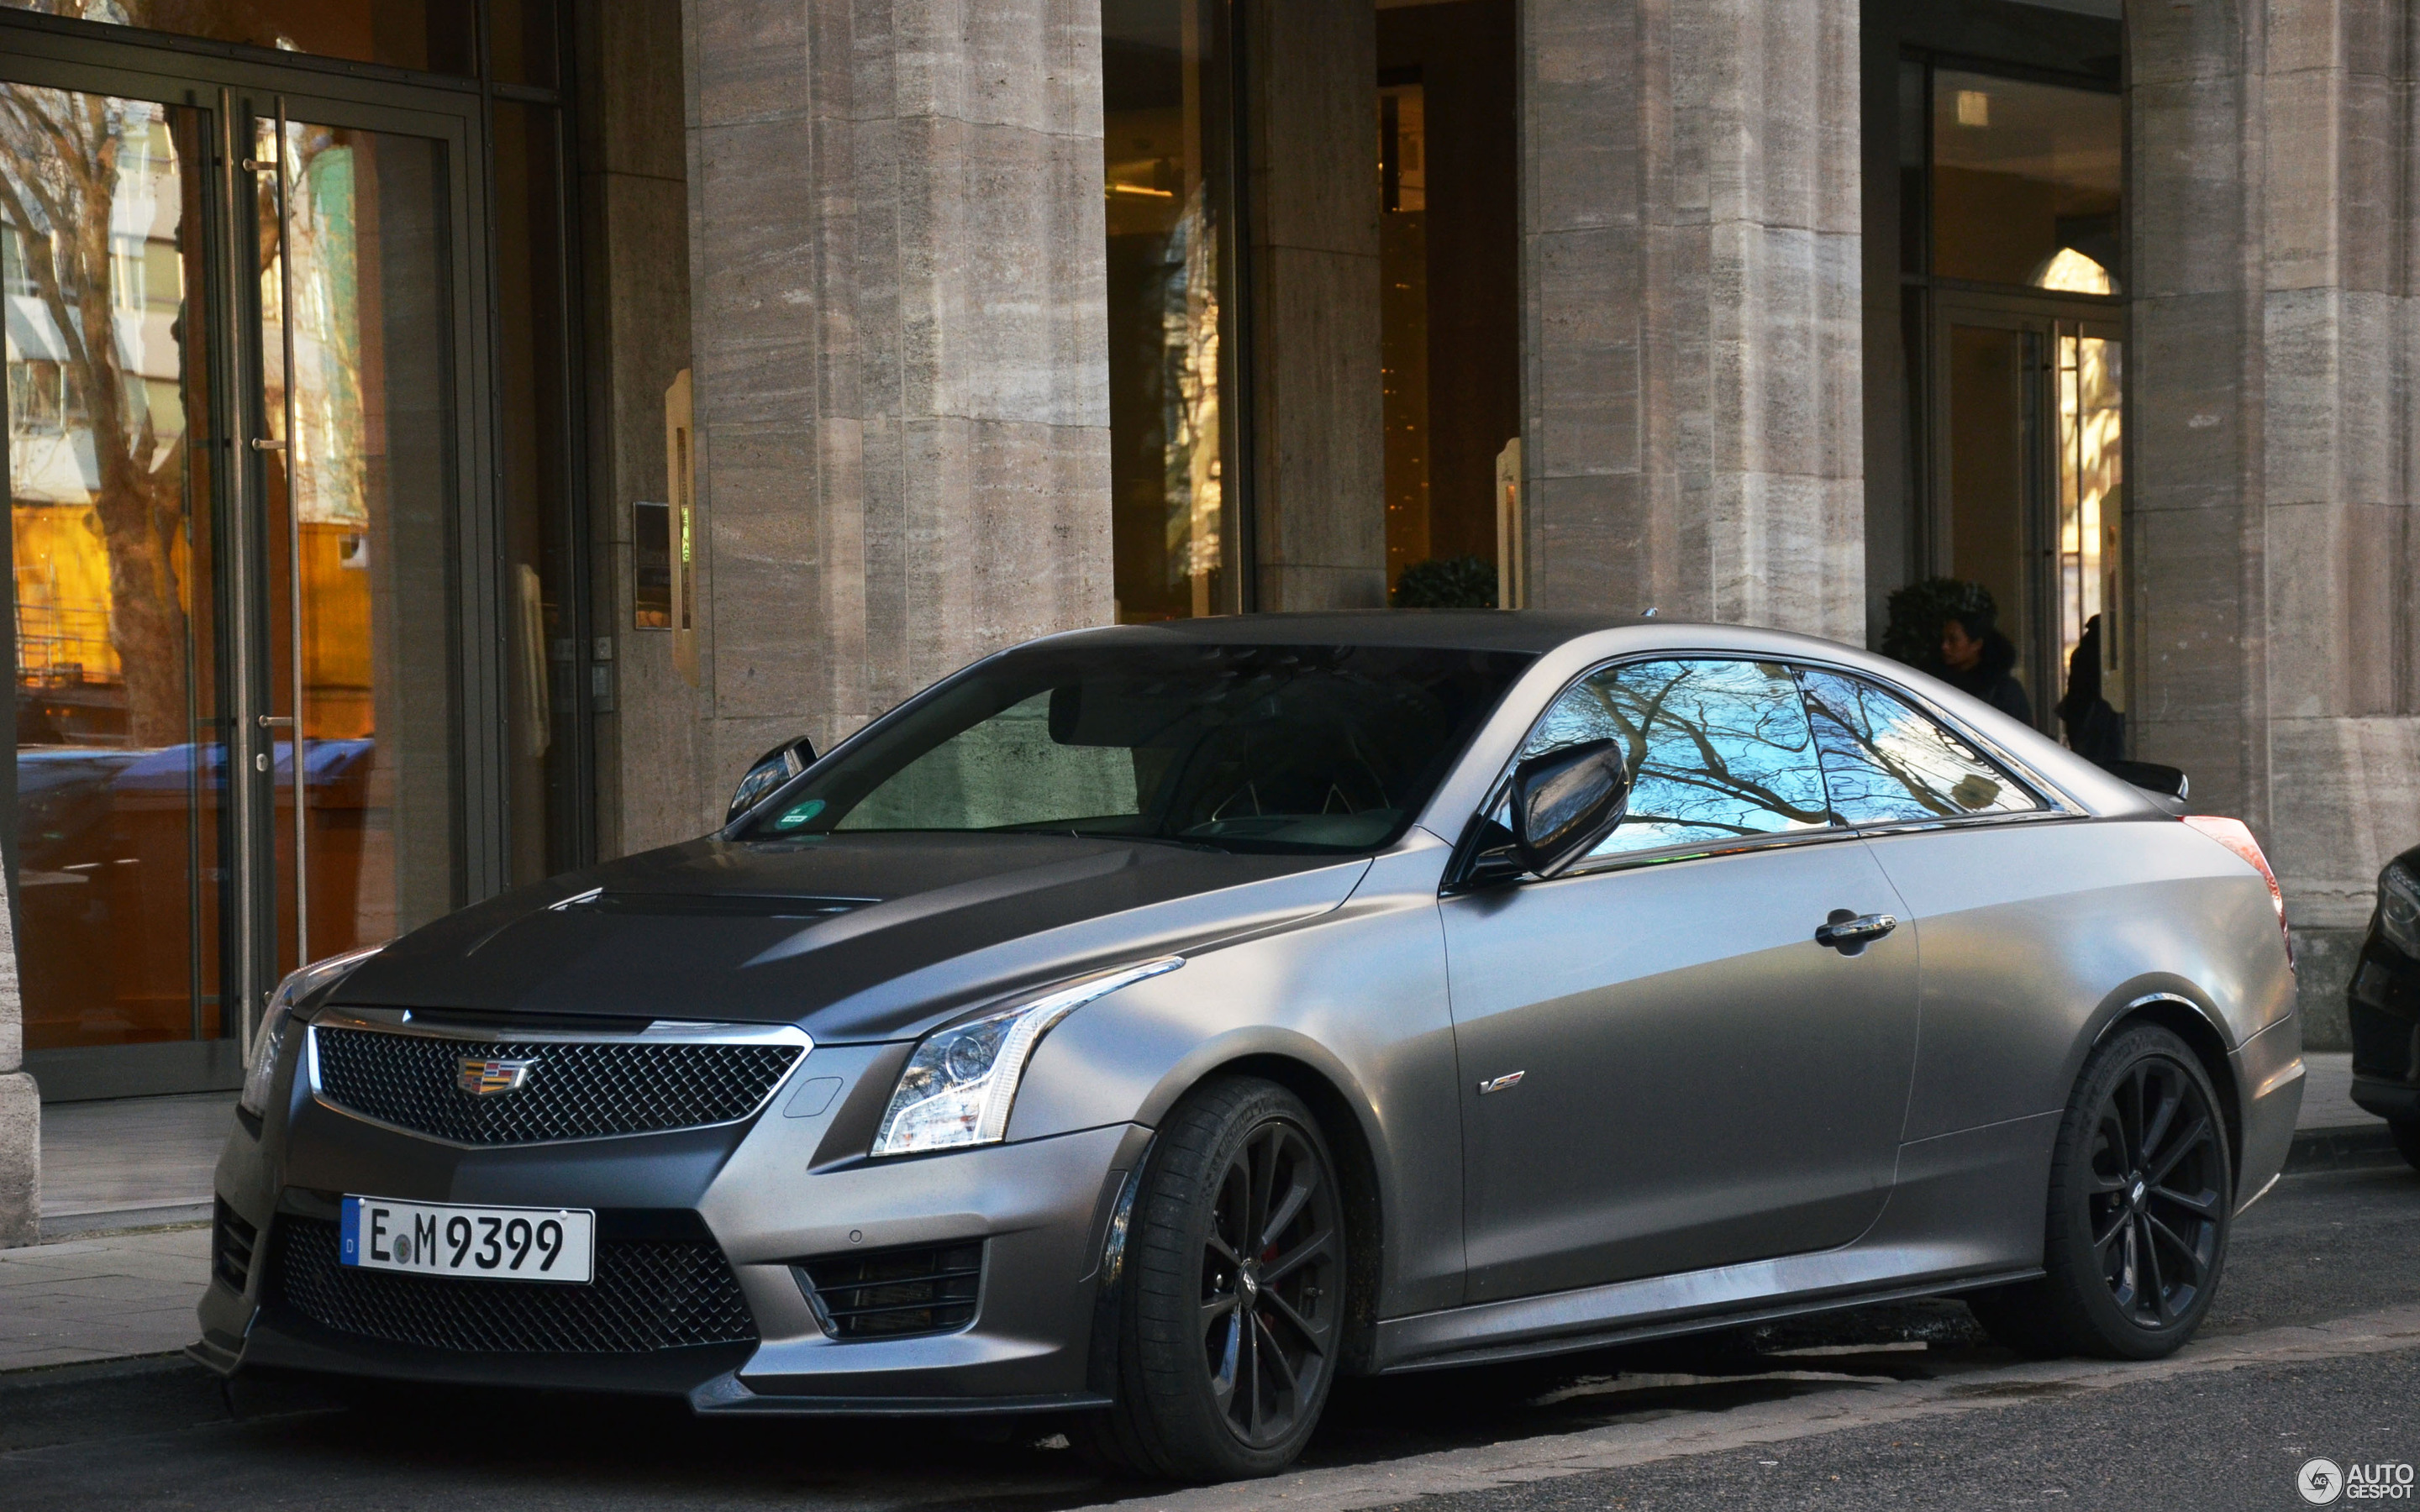 Cadillac Ats V Coupe >> Cadillac Ats V Coupe 11 January 2019 Autogespot